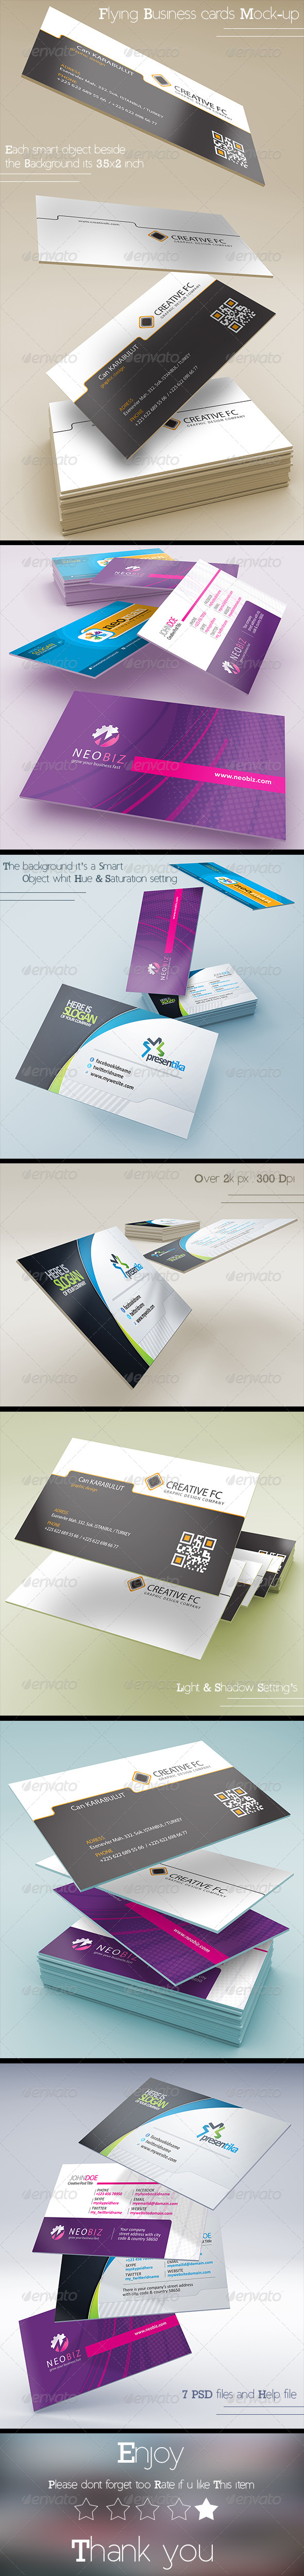 GraphicRiver Flying Business Card Mock-up 8319543